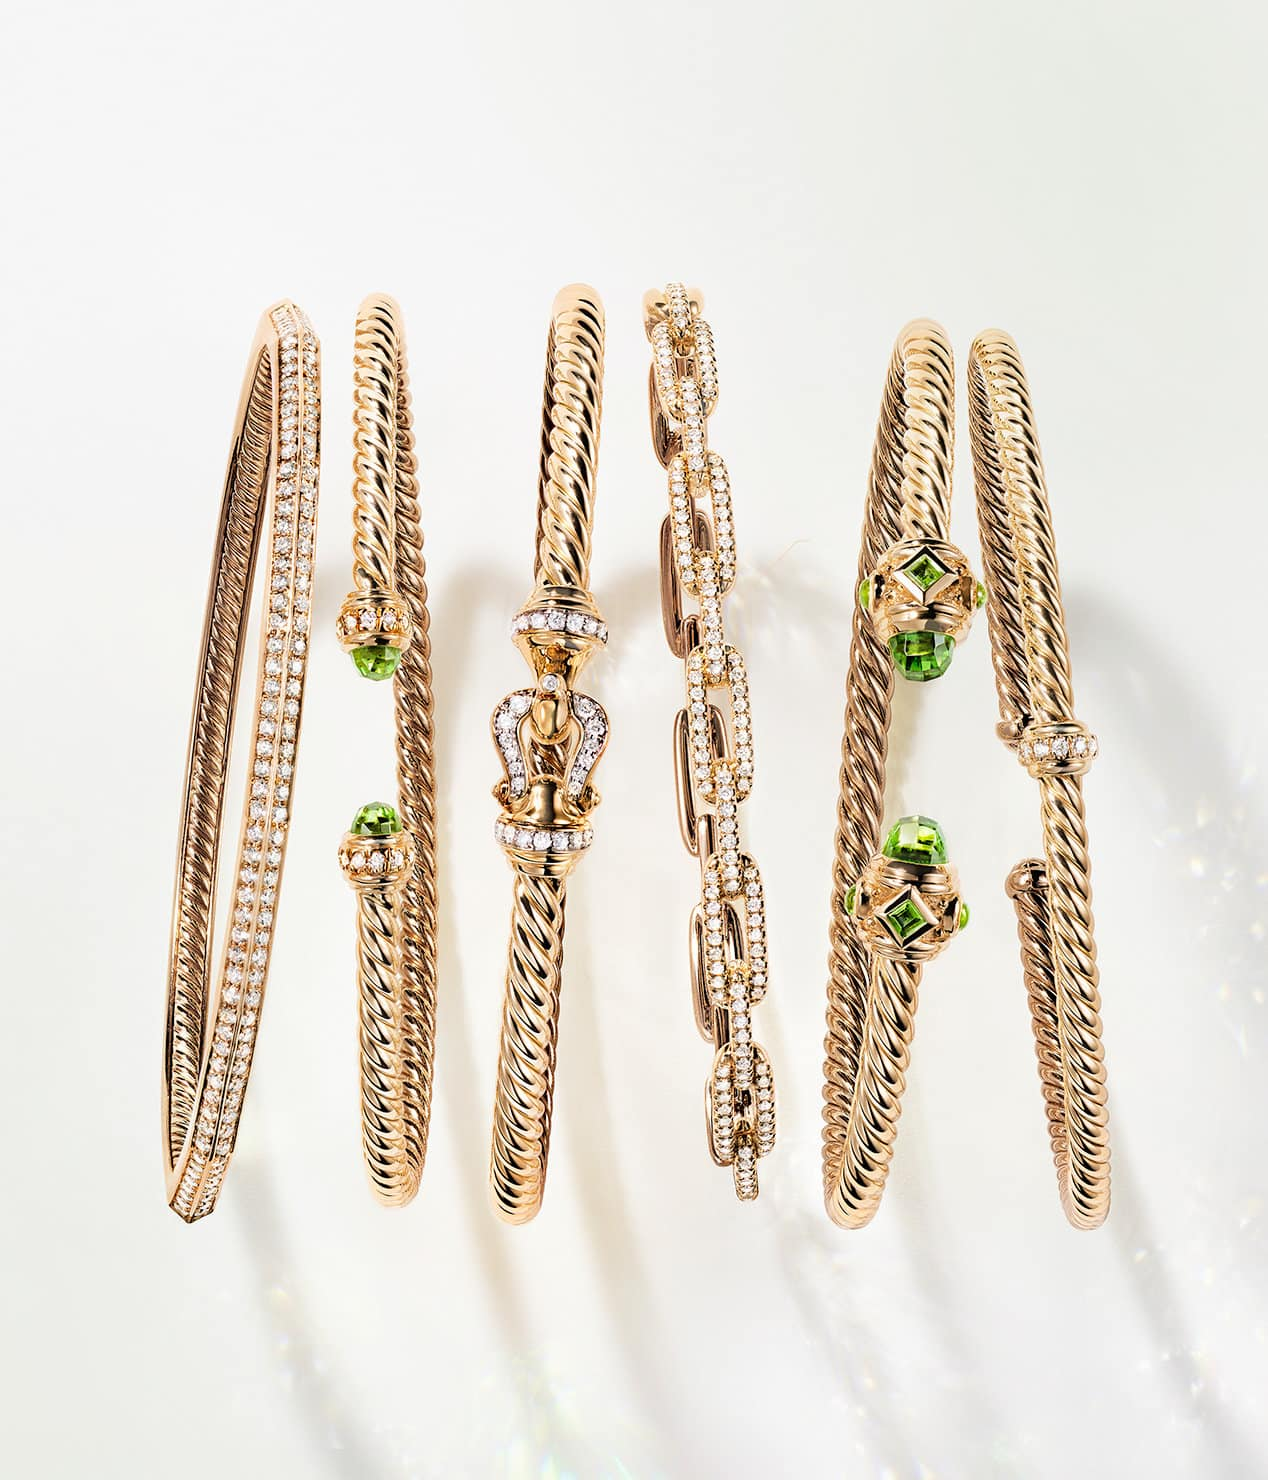 A color photograph shows a horizontal row of six David Yurman Cable, chain and faceted bracelets standing on a white background with soft shadows. The women's jewelry is crafted from 18K yellow gold with or without pavé diamonds and peridot accents on the bracelet ends.